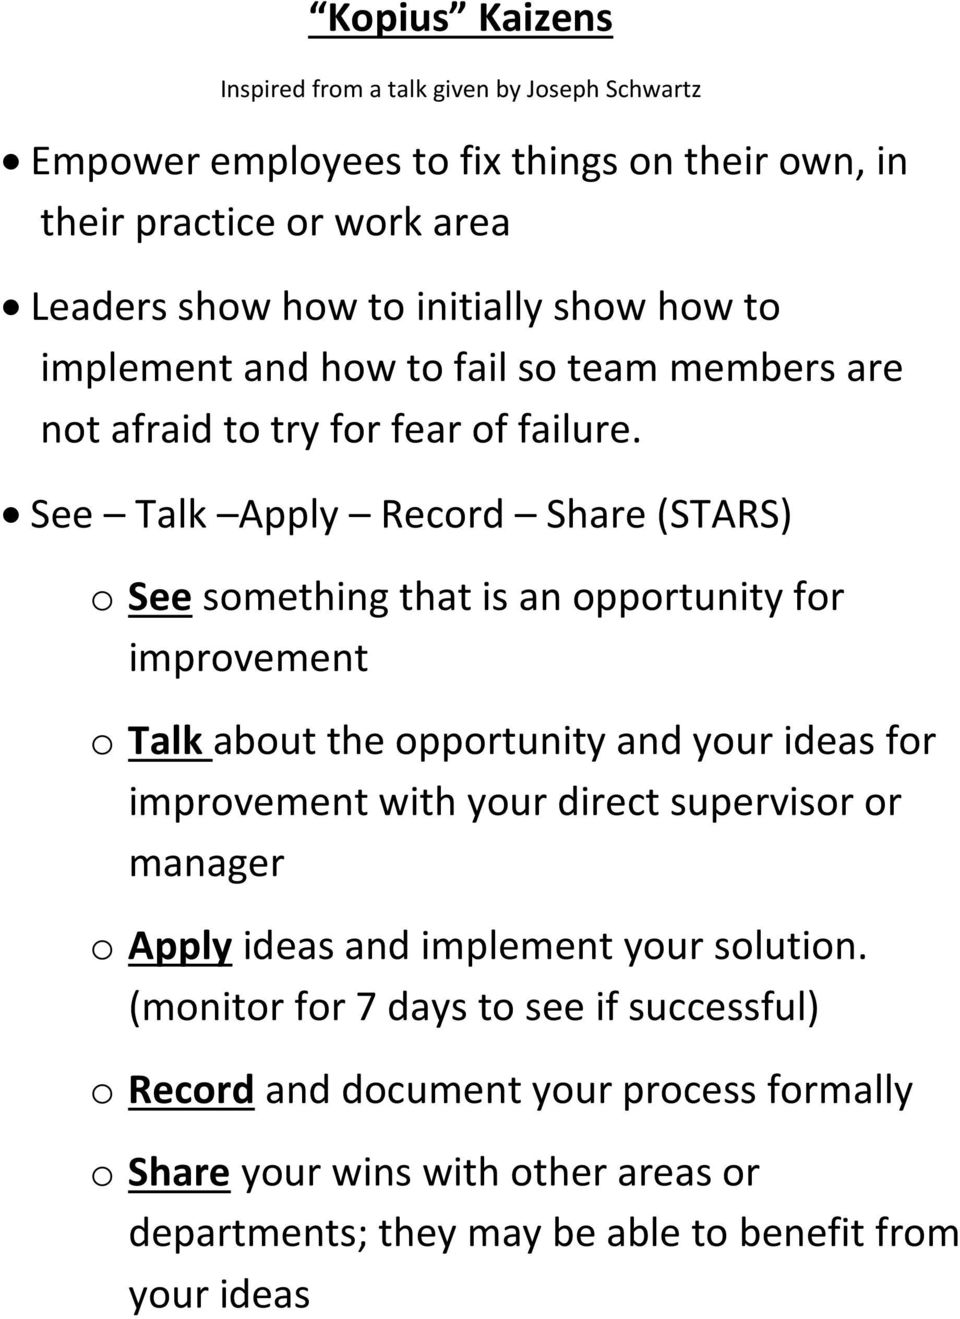 See Talk Apply Record Share (STARS) o See something that is an opportunity for improvement o Talk about the opportunity and your ideas for improvement with your direct